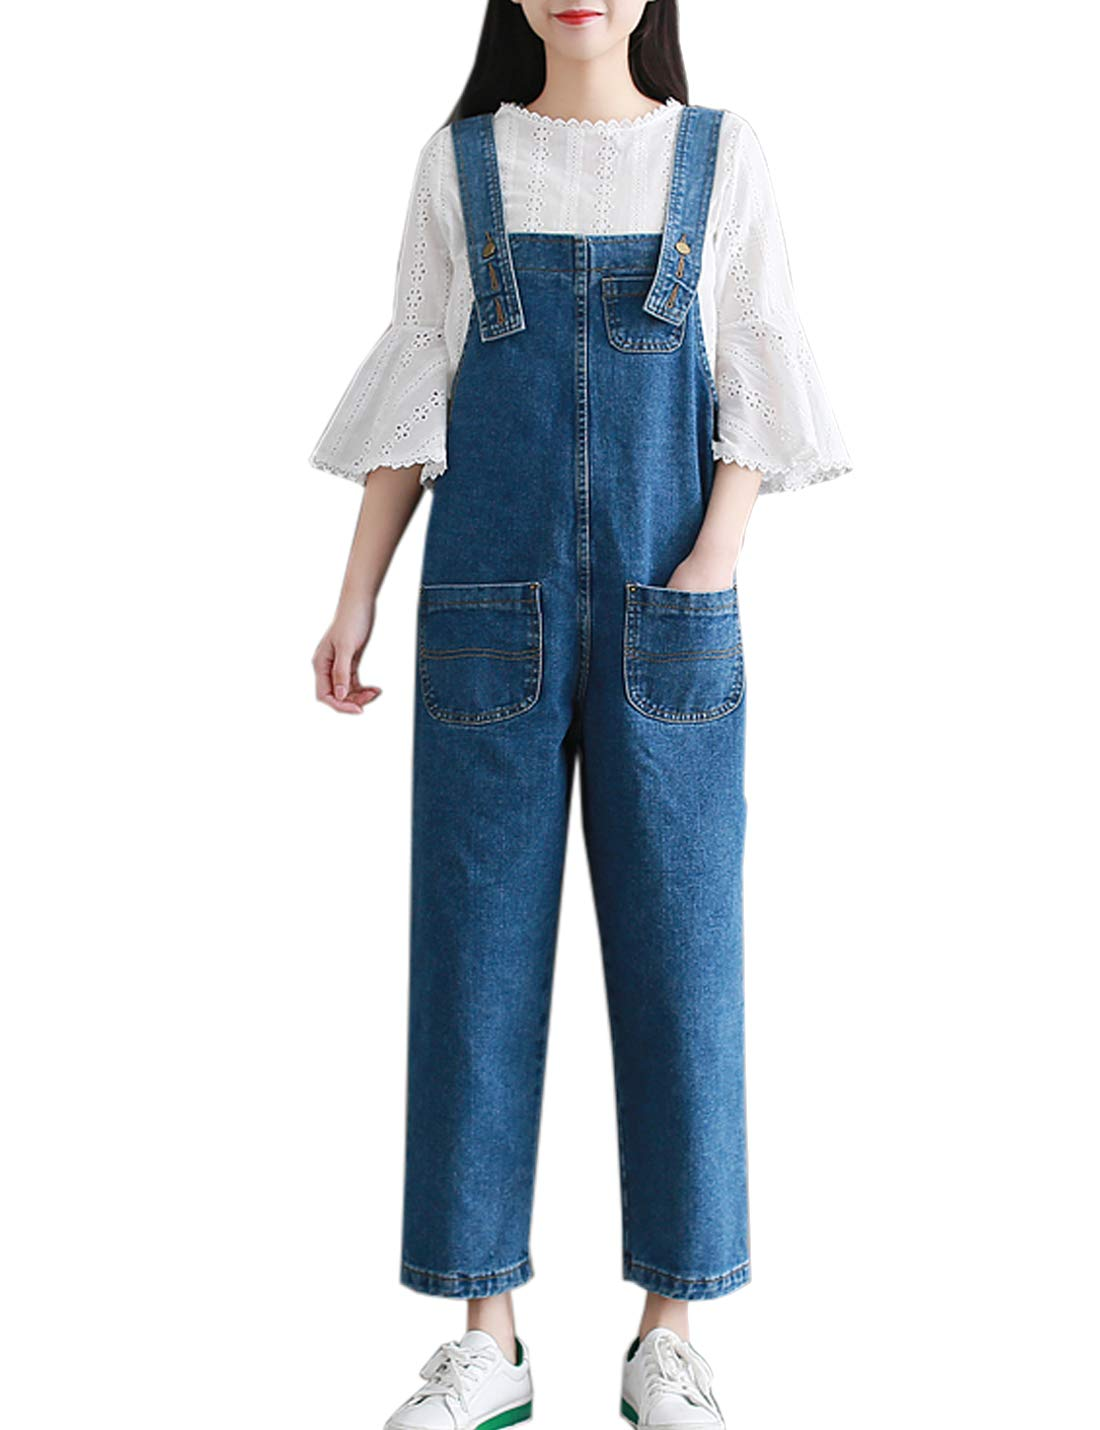 Flygo Women's Casual Loose Wide Leg Denim Cropped Harem Pant Bib Overalls Jeans Jumpsuits